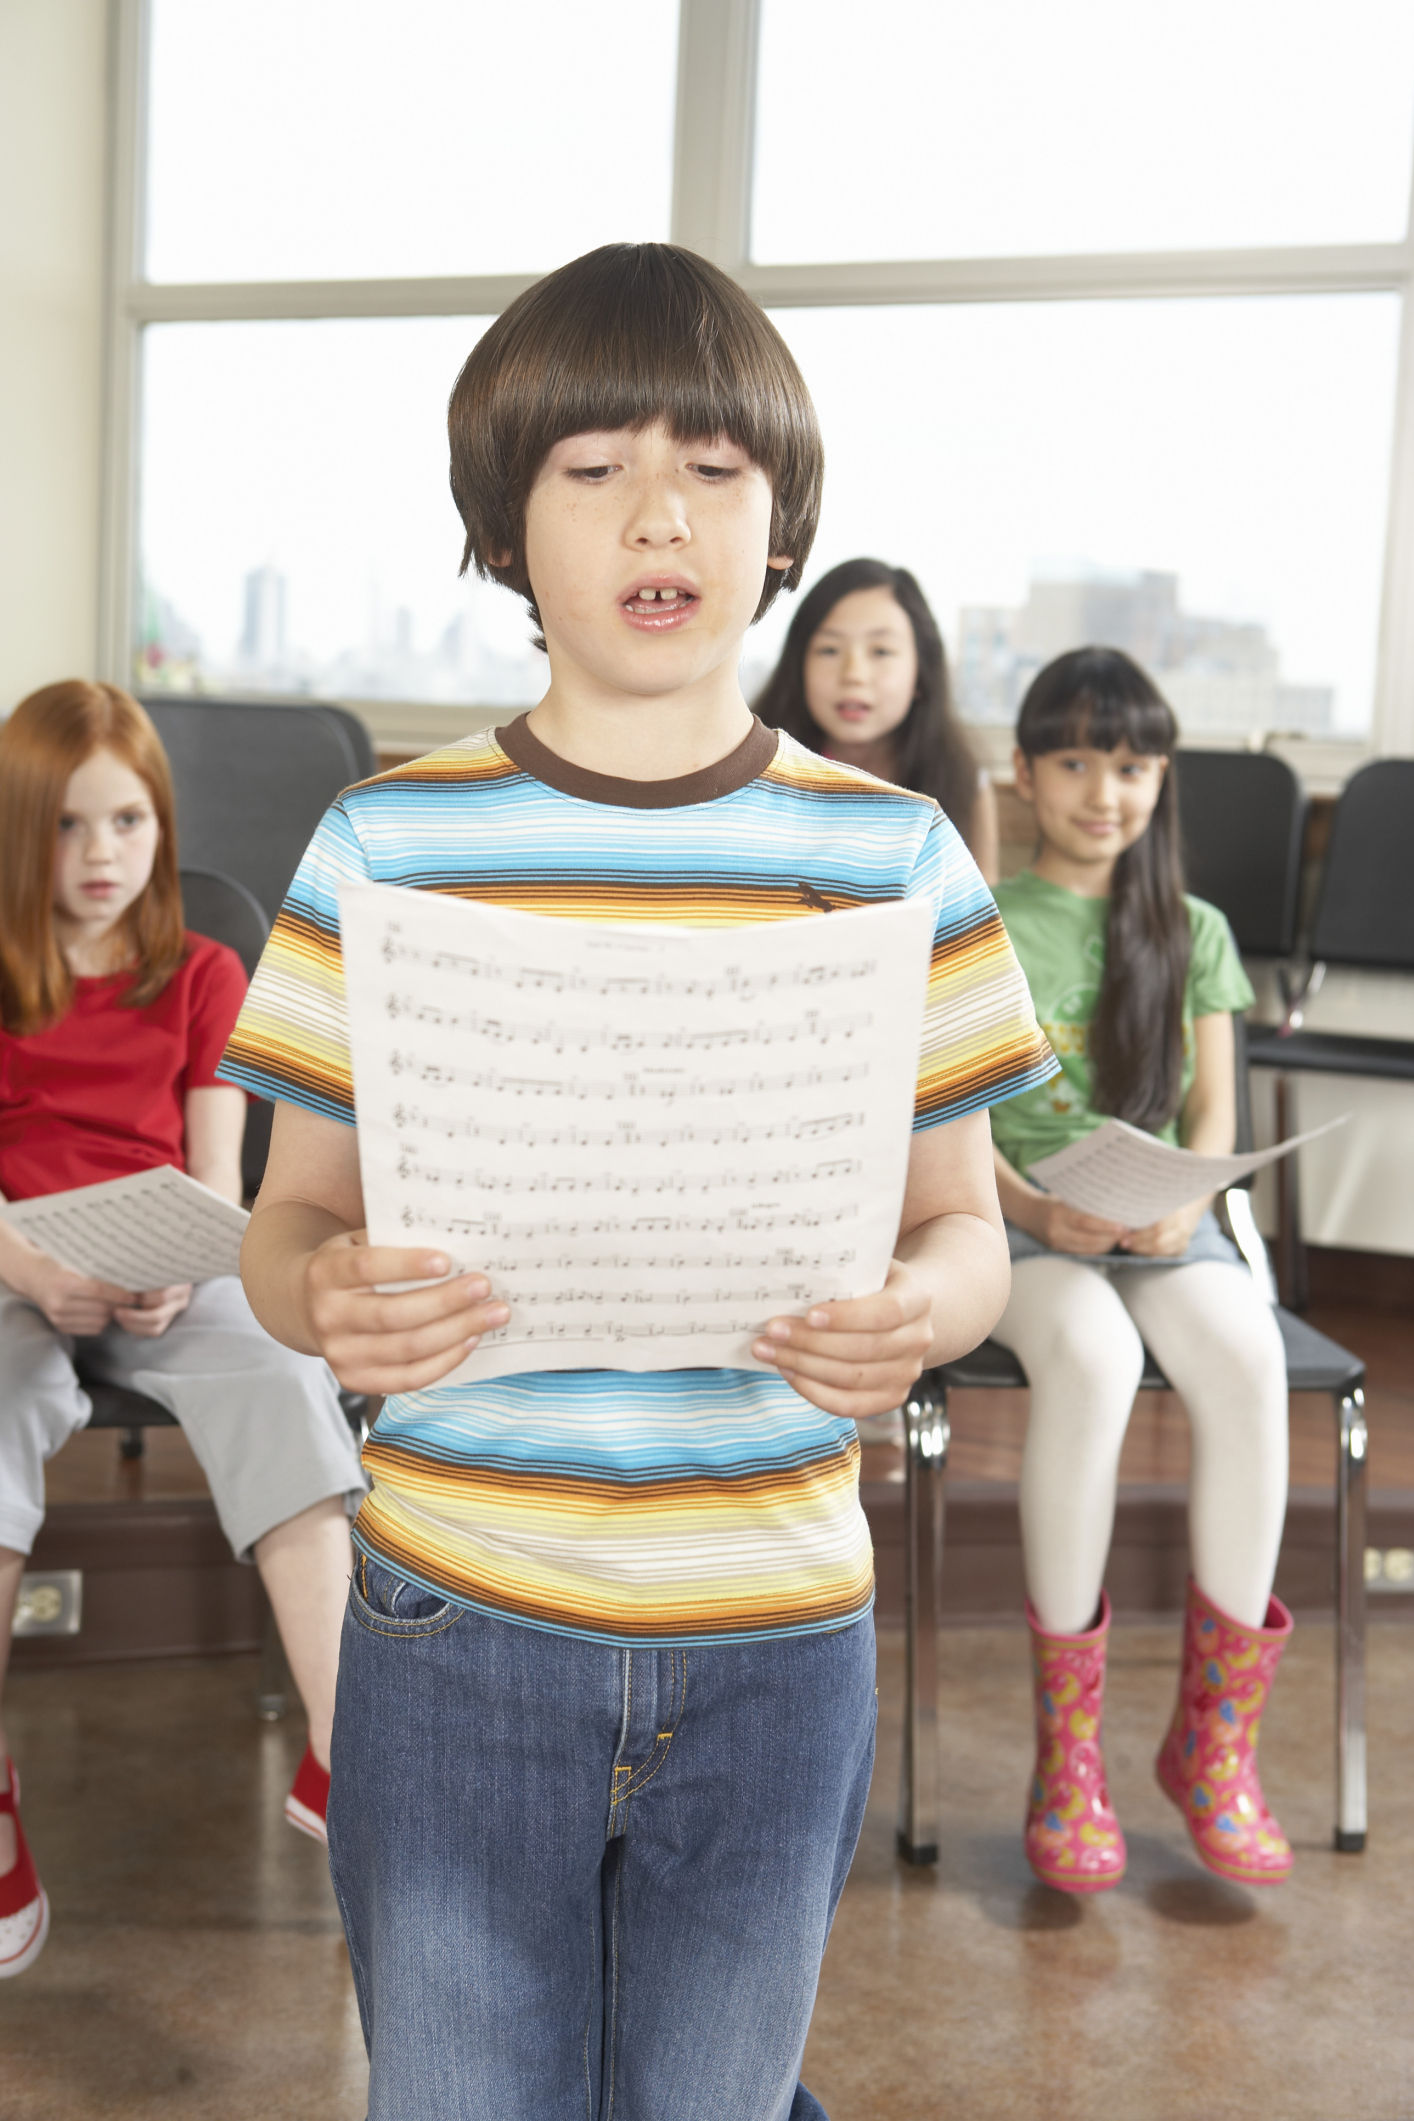 How to Create a School Song | Synonym